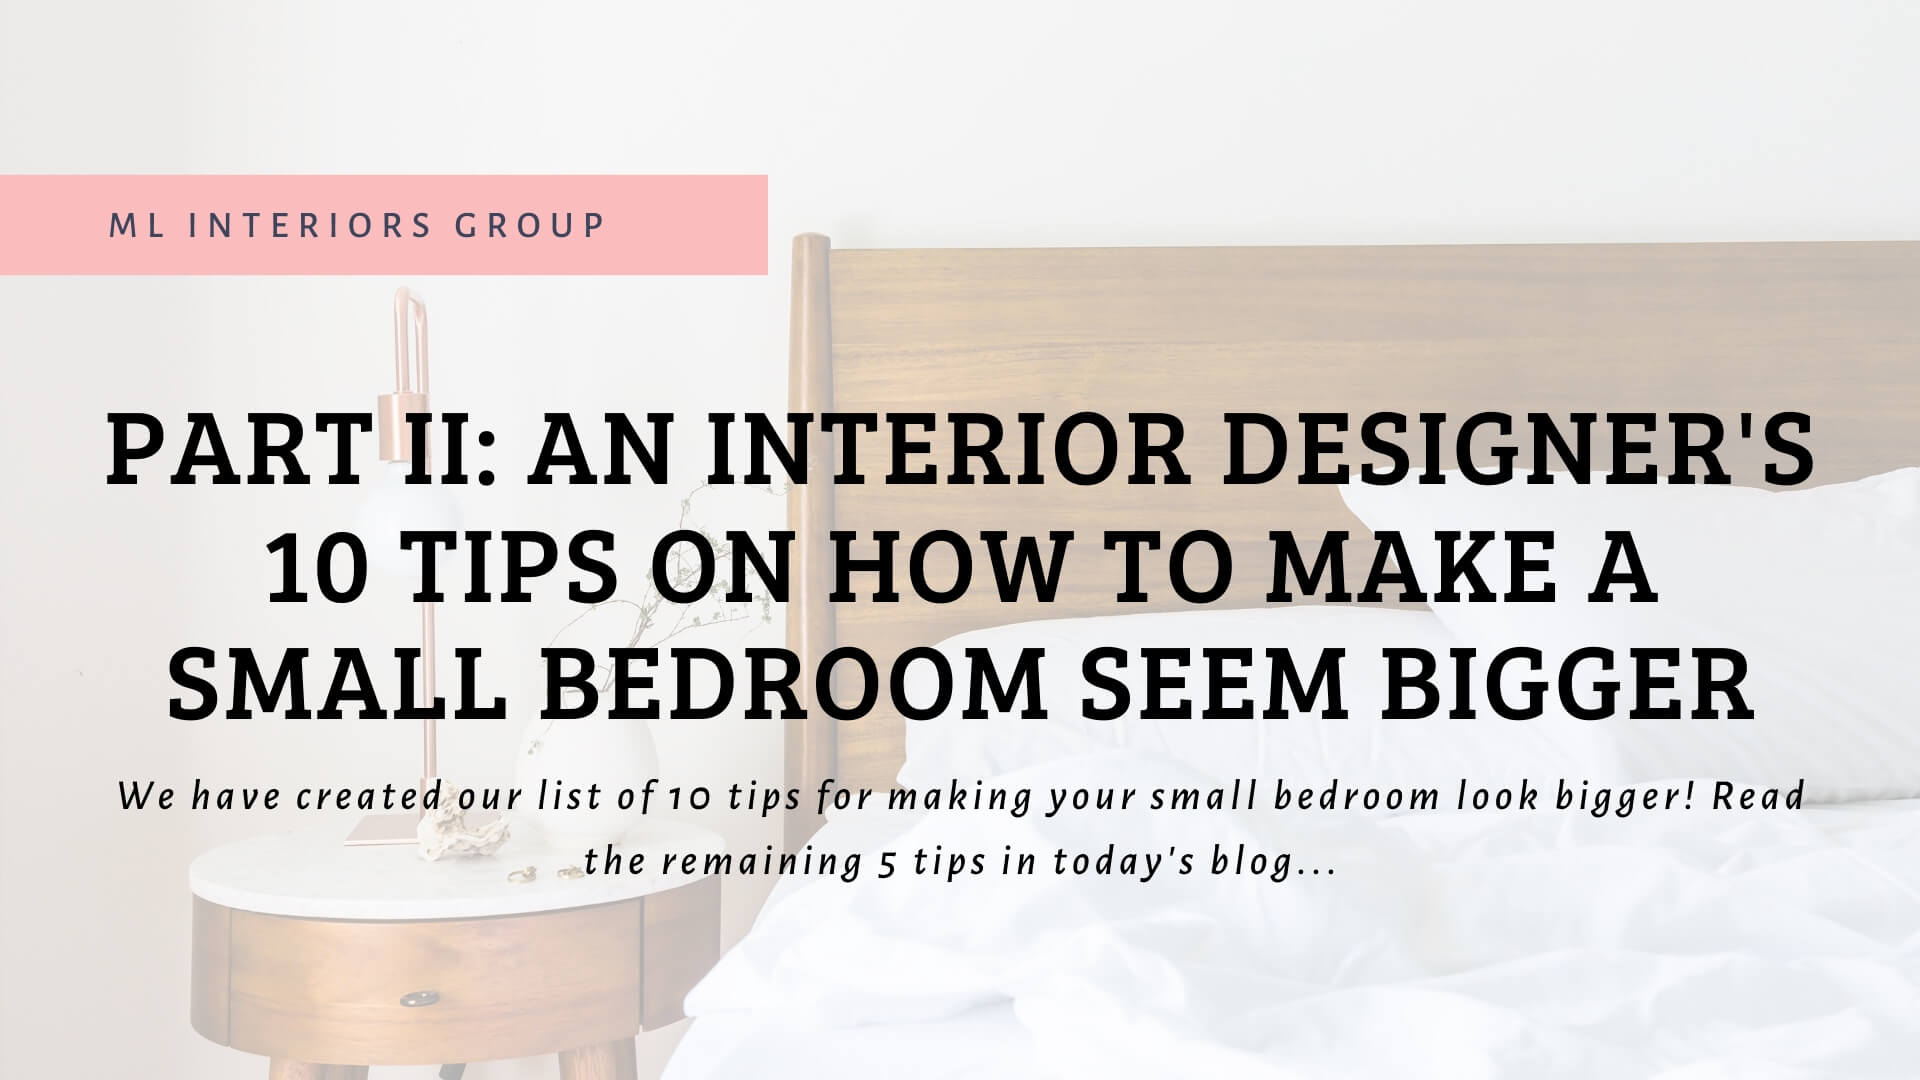 Part II: An Interior Designer's 10 Tips on How to Make a Small Bedroom Seem Bigger